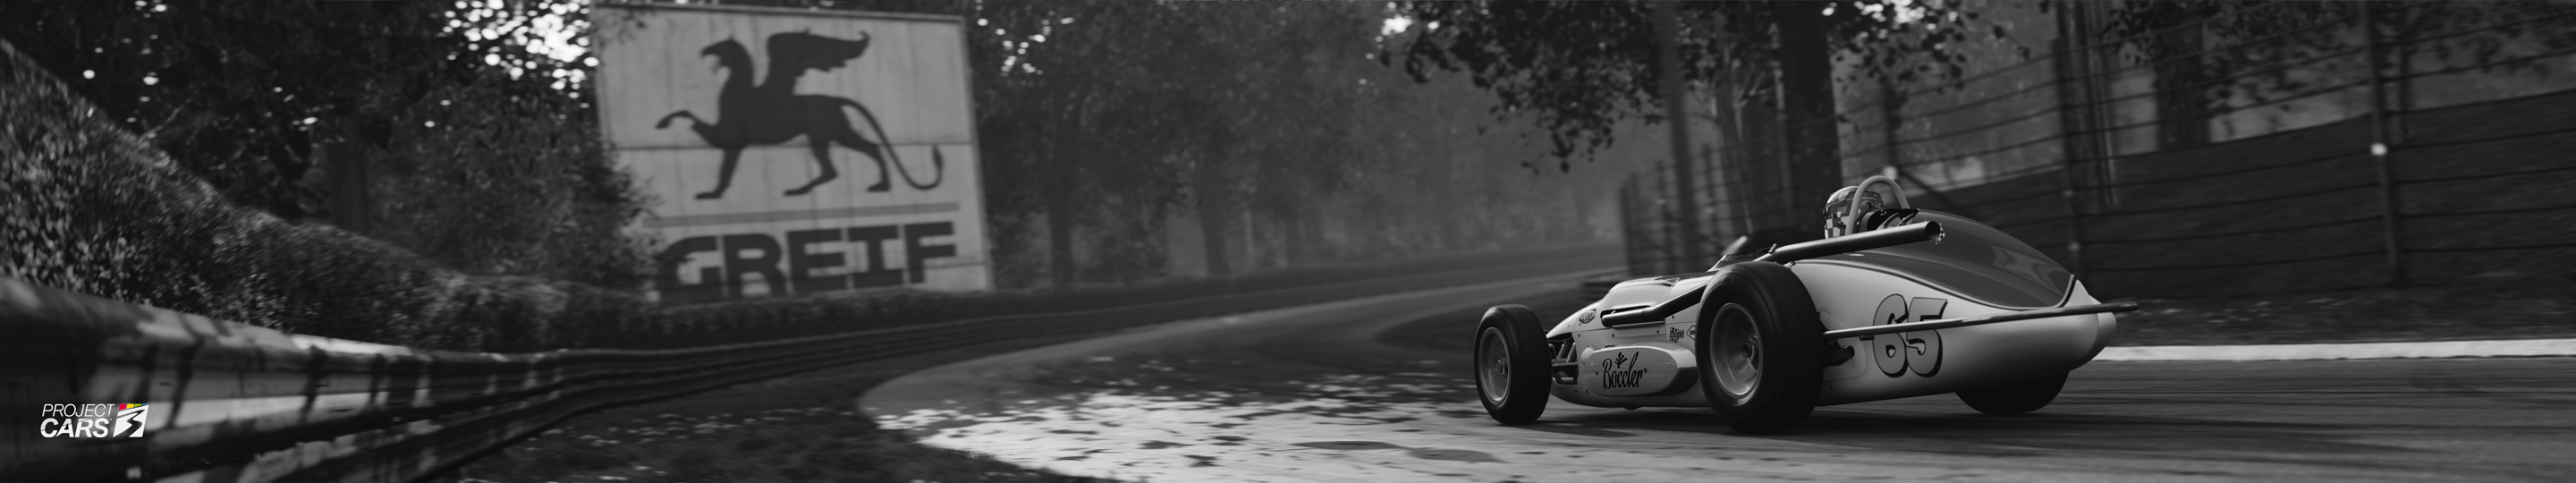 1 PROJECT CARS 3 WATSON ROADSTER at MONZA HISTORIC copy.jpg